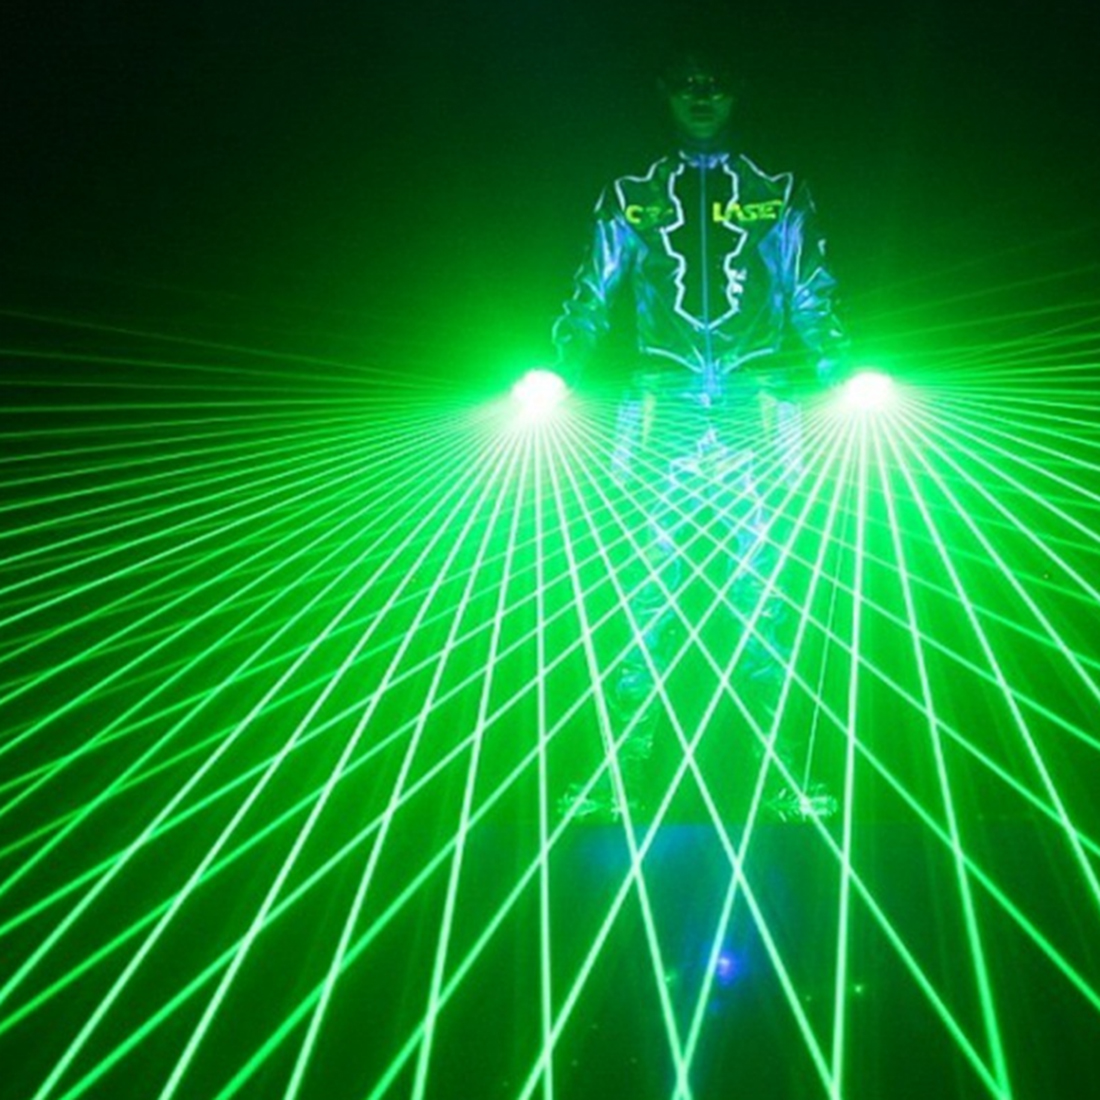 1Pcs Super Cool Green Laser Gloves Dancing Stage Show Light With 4 Pcs Lasers Luminous Gloves Light For DJ Club Party Bars(China)